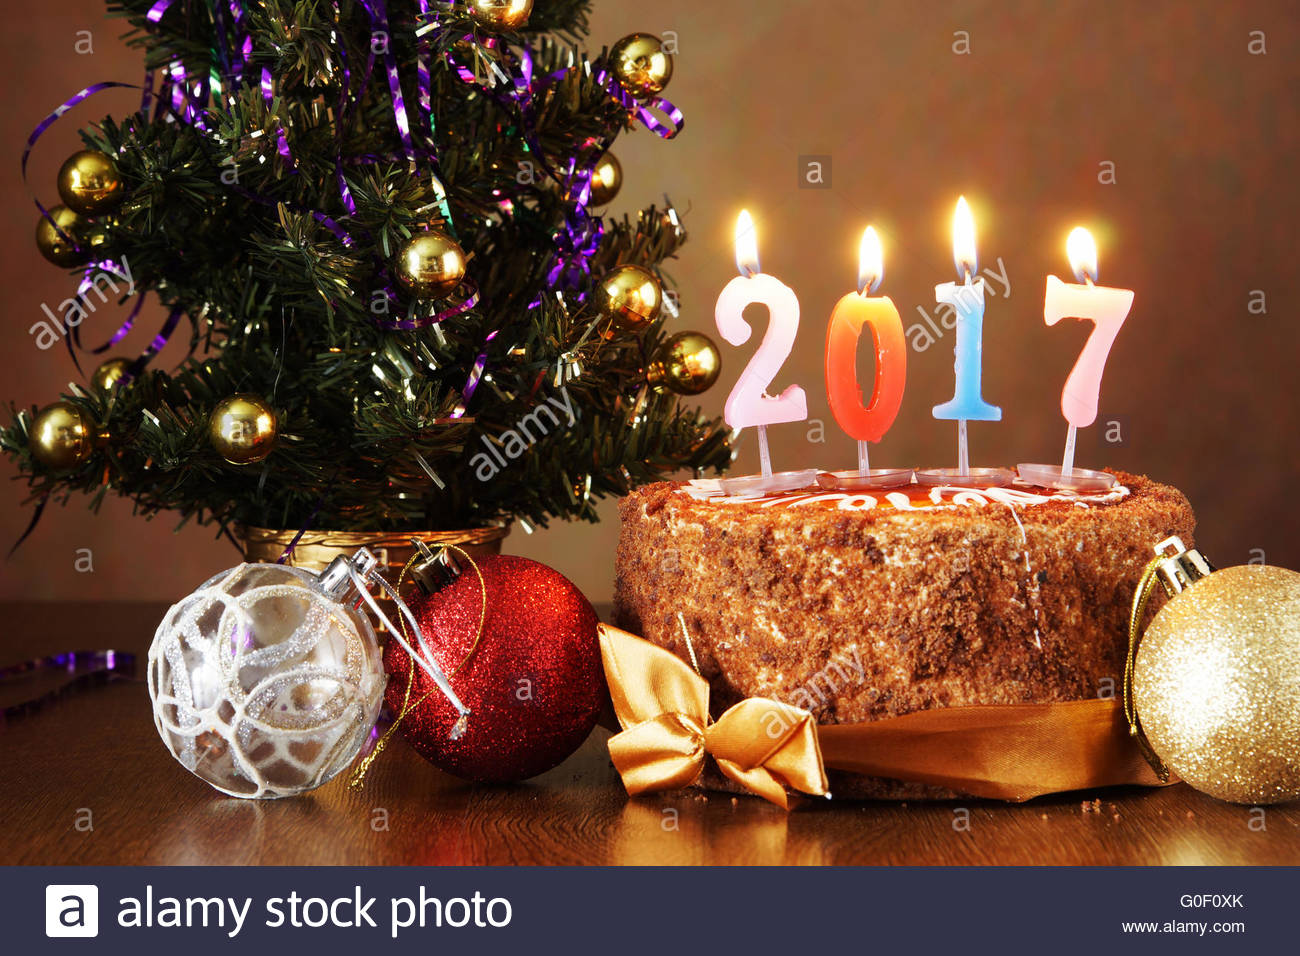 Christmas Cake Design 2018 : New Year 2017 still life. Chocolate cake and artificial ...